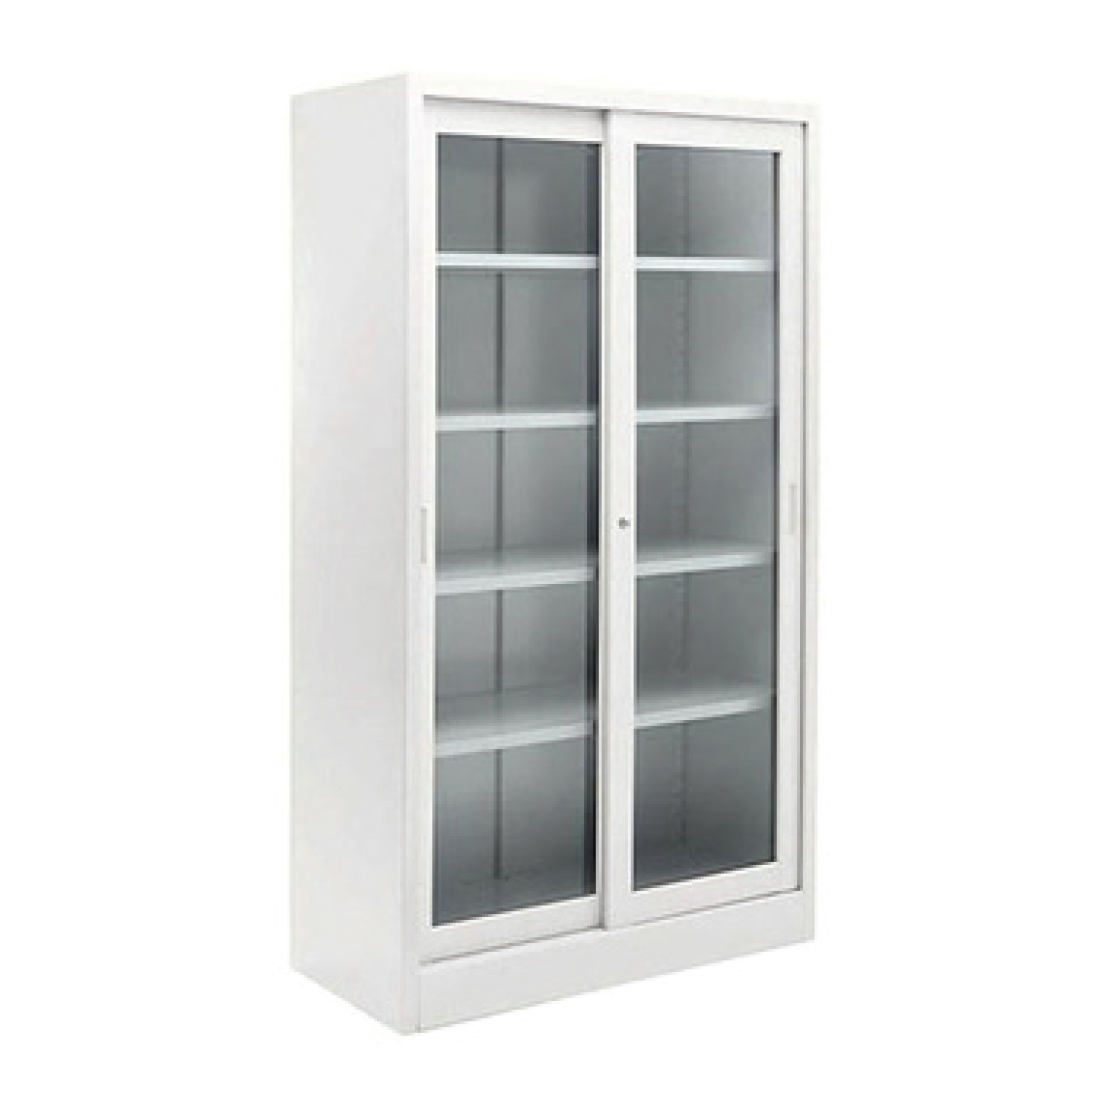 Storage cabinet glass doors galt littlepage Glass cabinet doors